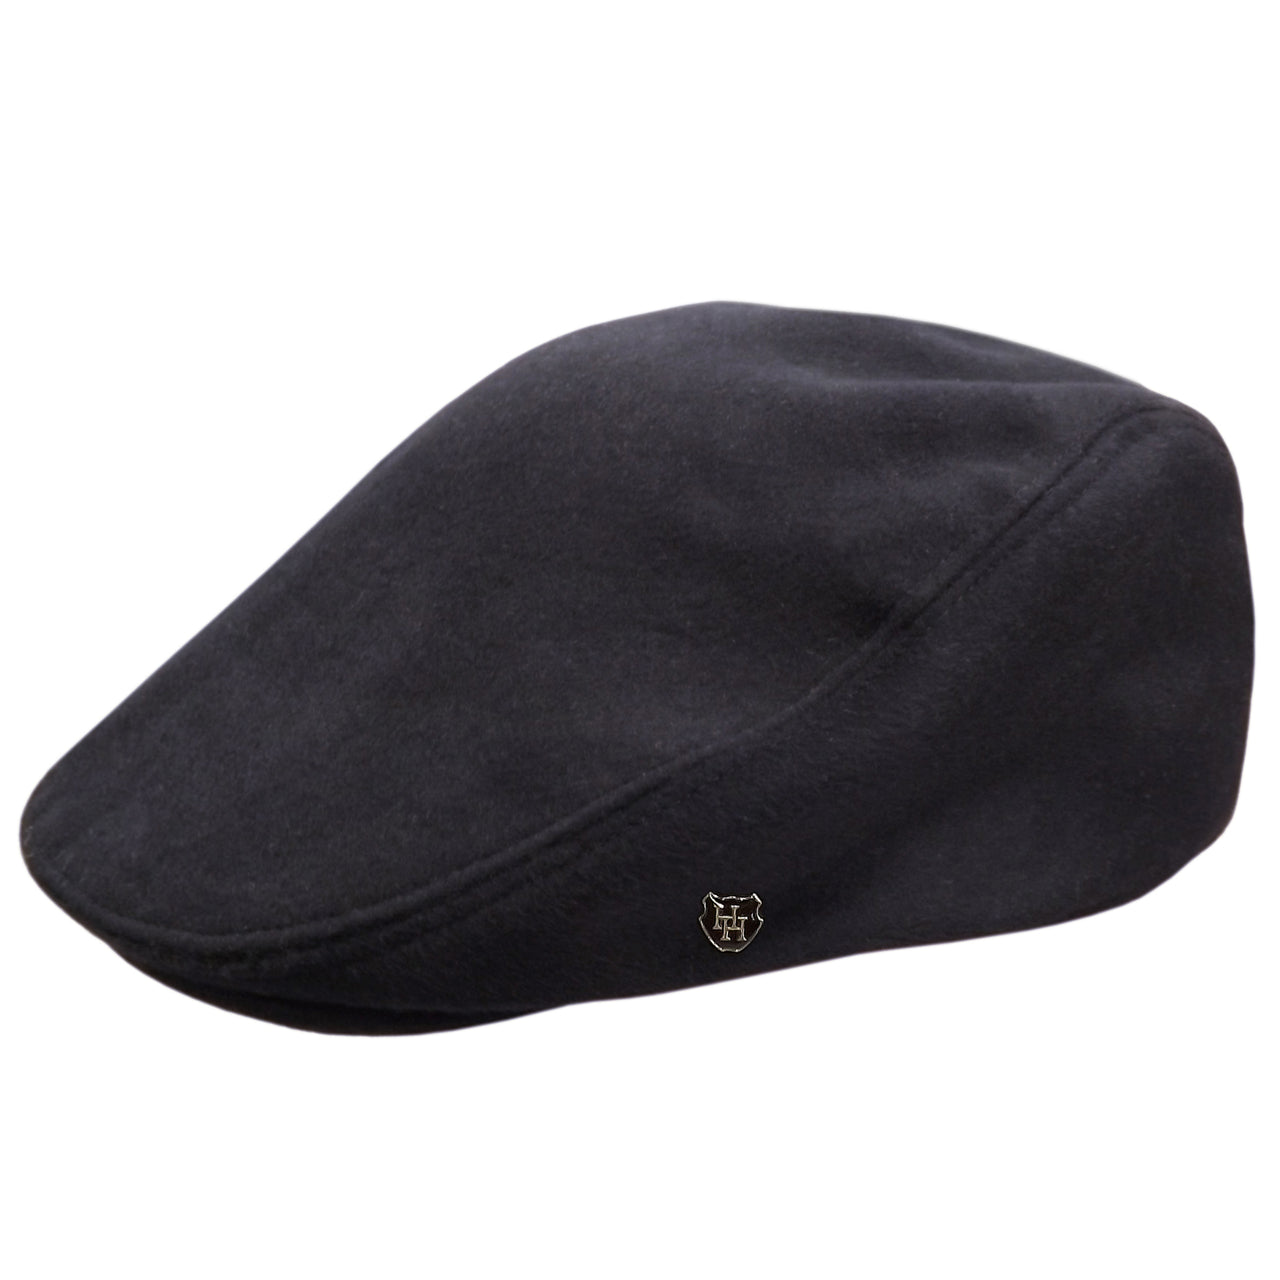 Hills Sports Cheescutter Cap